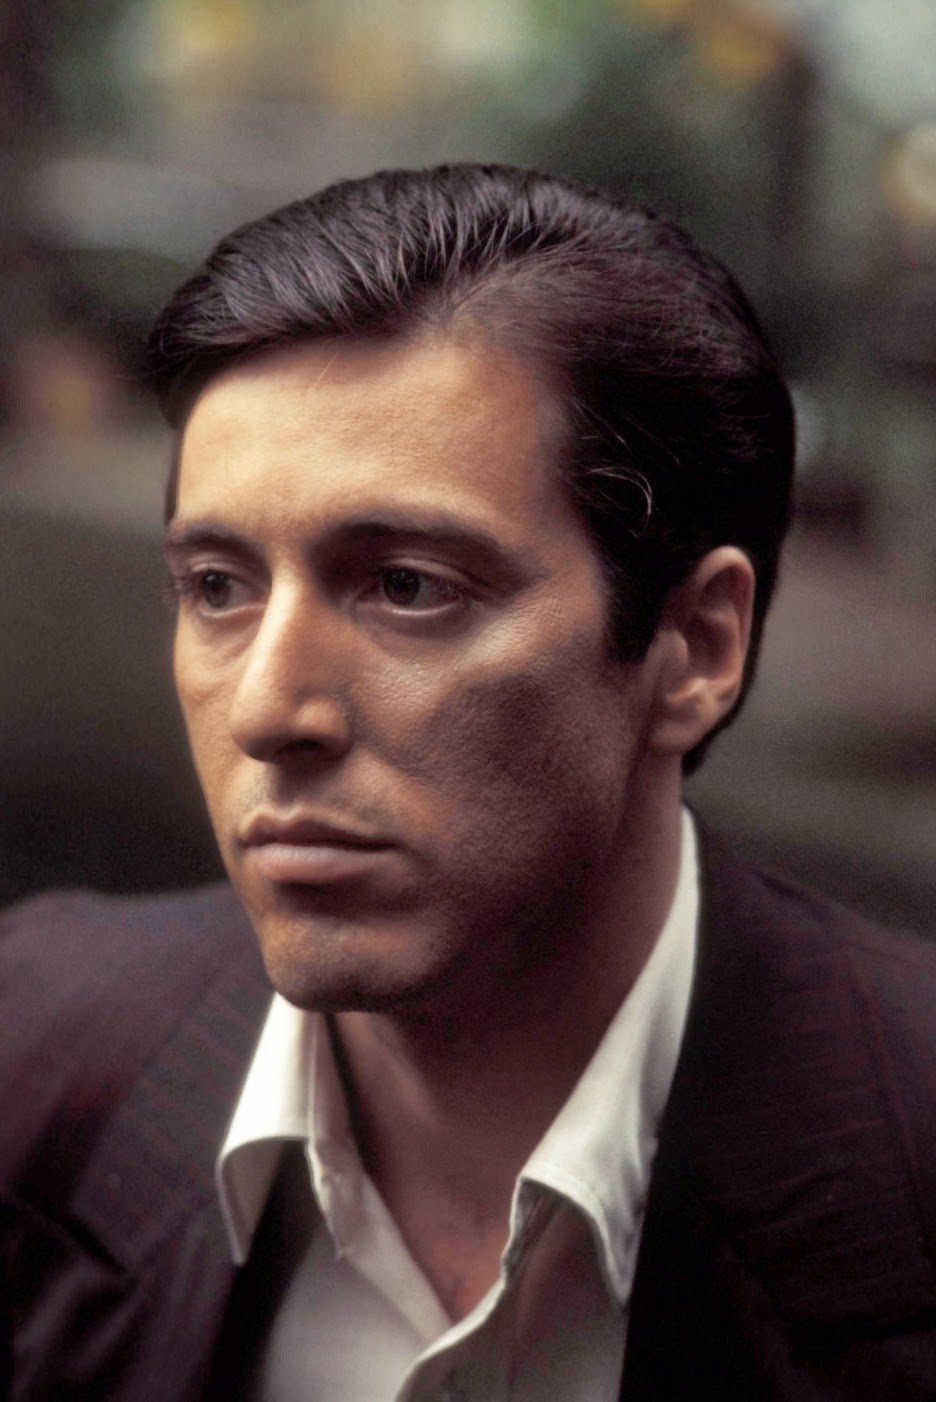 al pacino american actor - photo #3